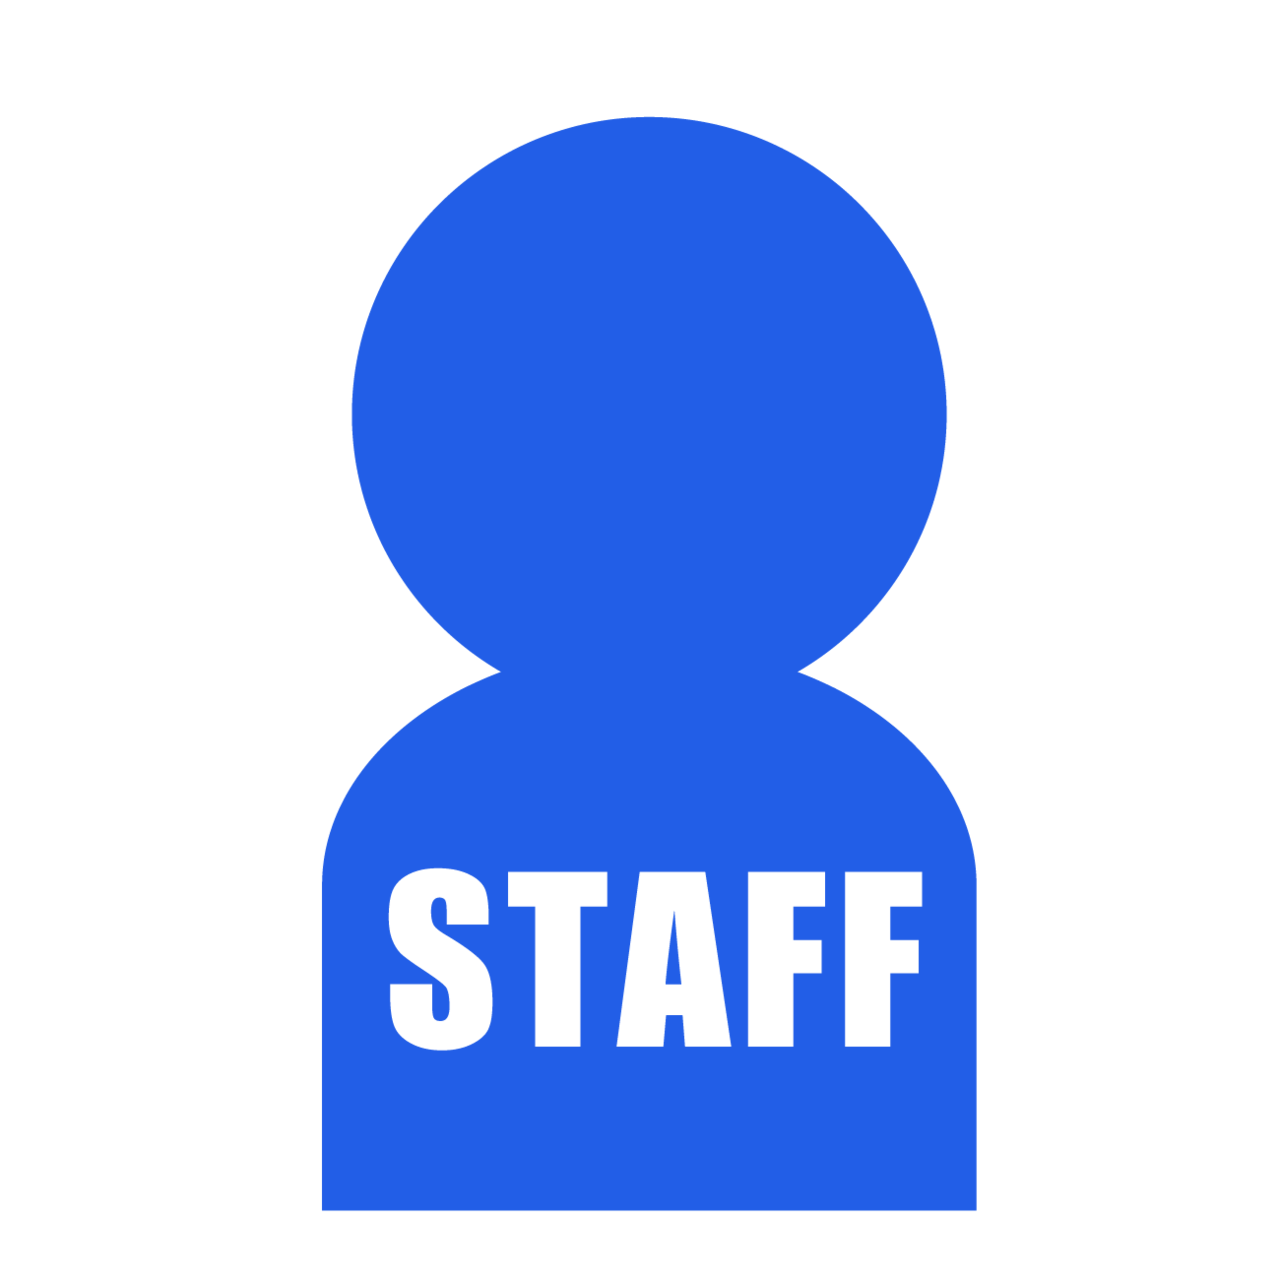 staff_icon.png